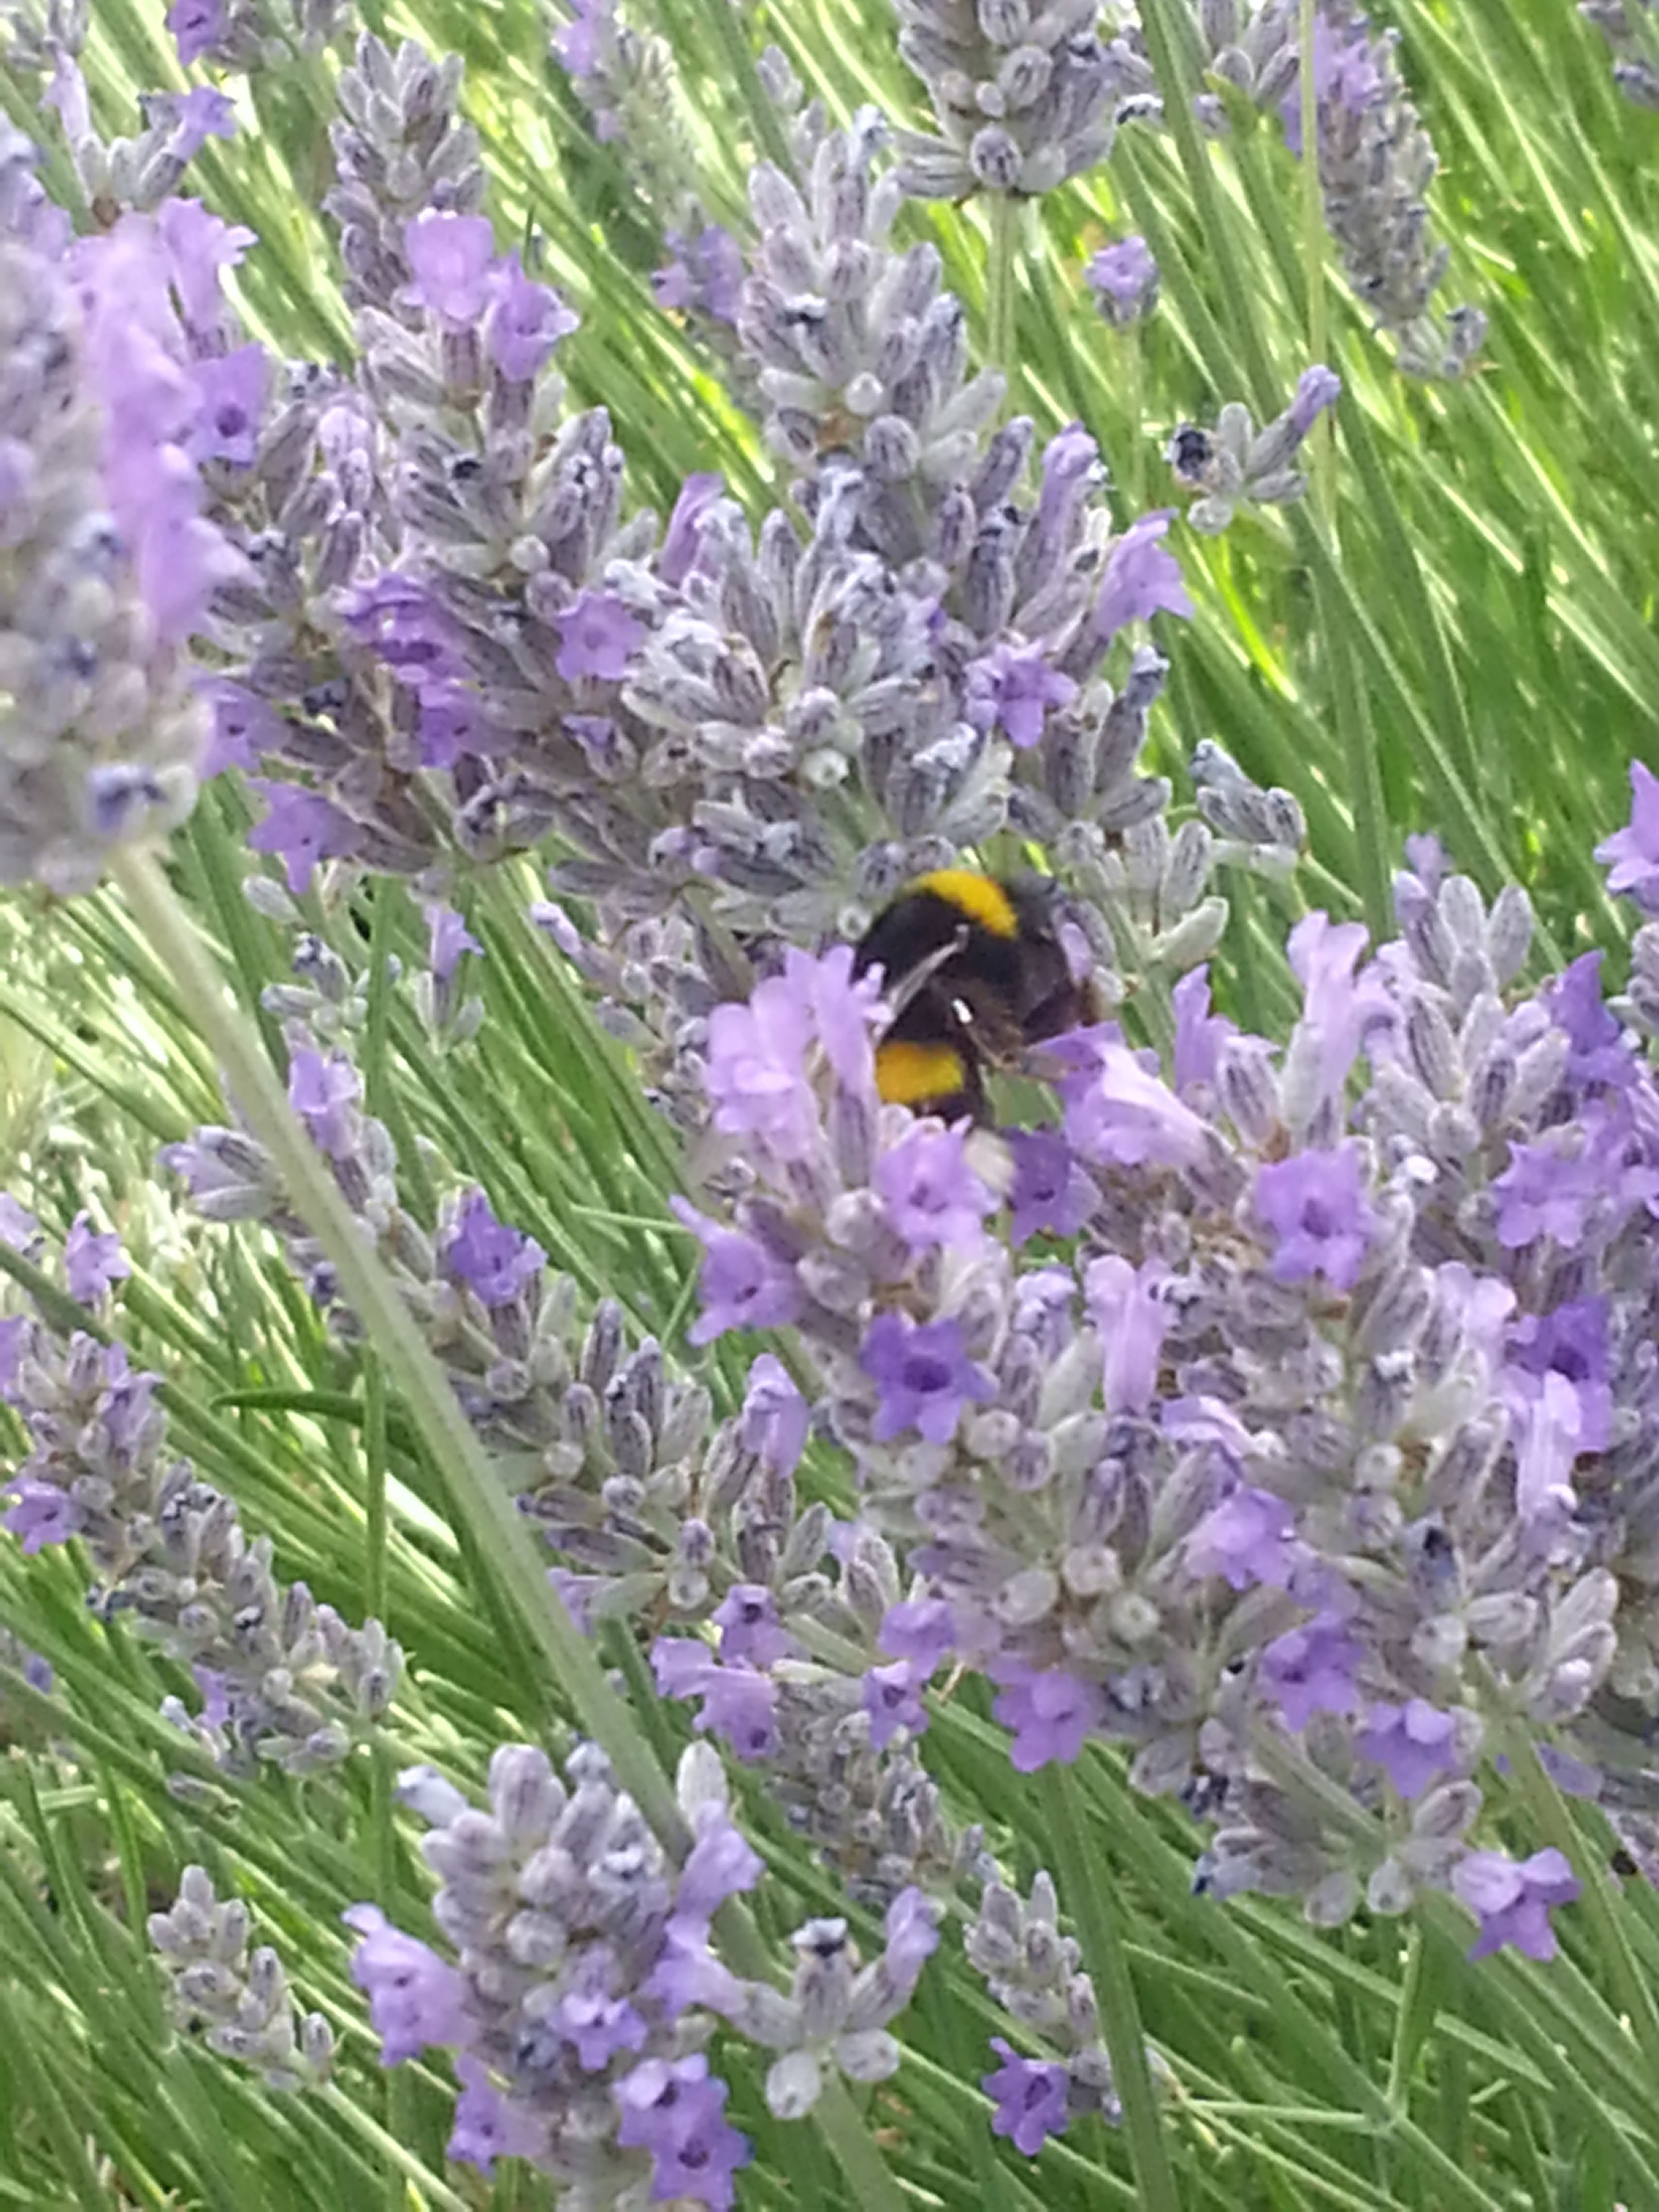 insect, flower, animal themes, animals in the wild, one animal, wildlife, freshness, pollination, fragility, bee, growth, petal, beauty in nature, purple, symbiotic relationship, nature, plant, honey bee, flower head, close-up